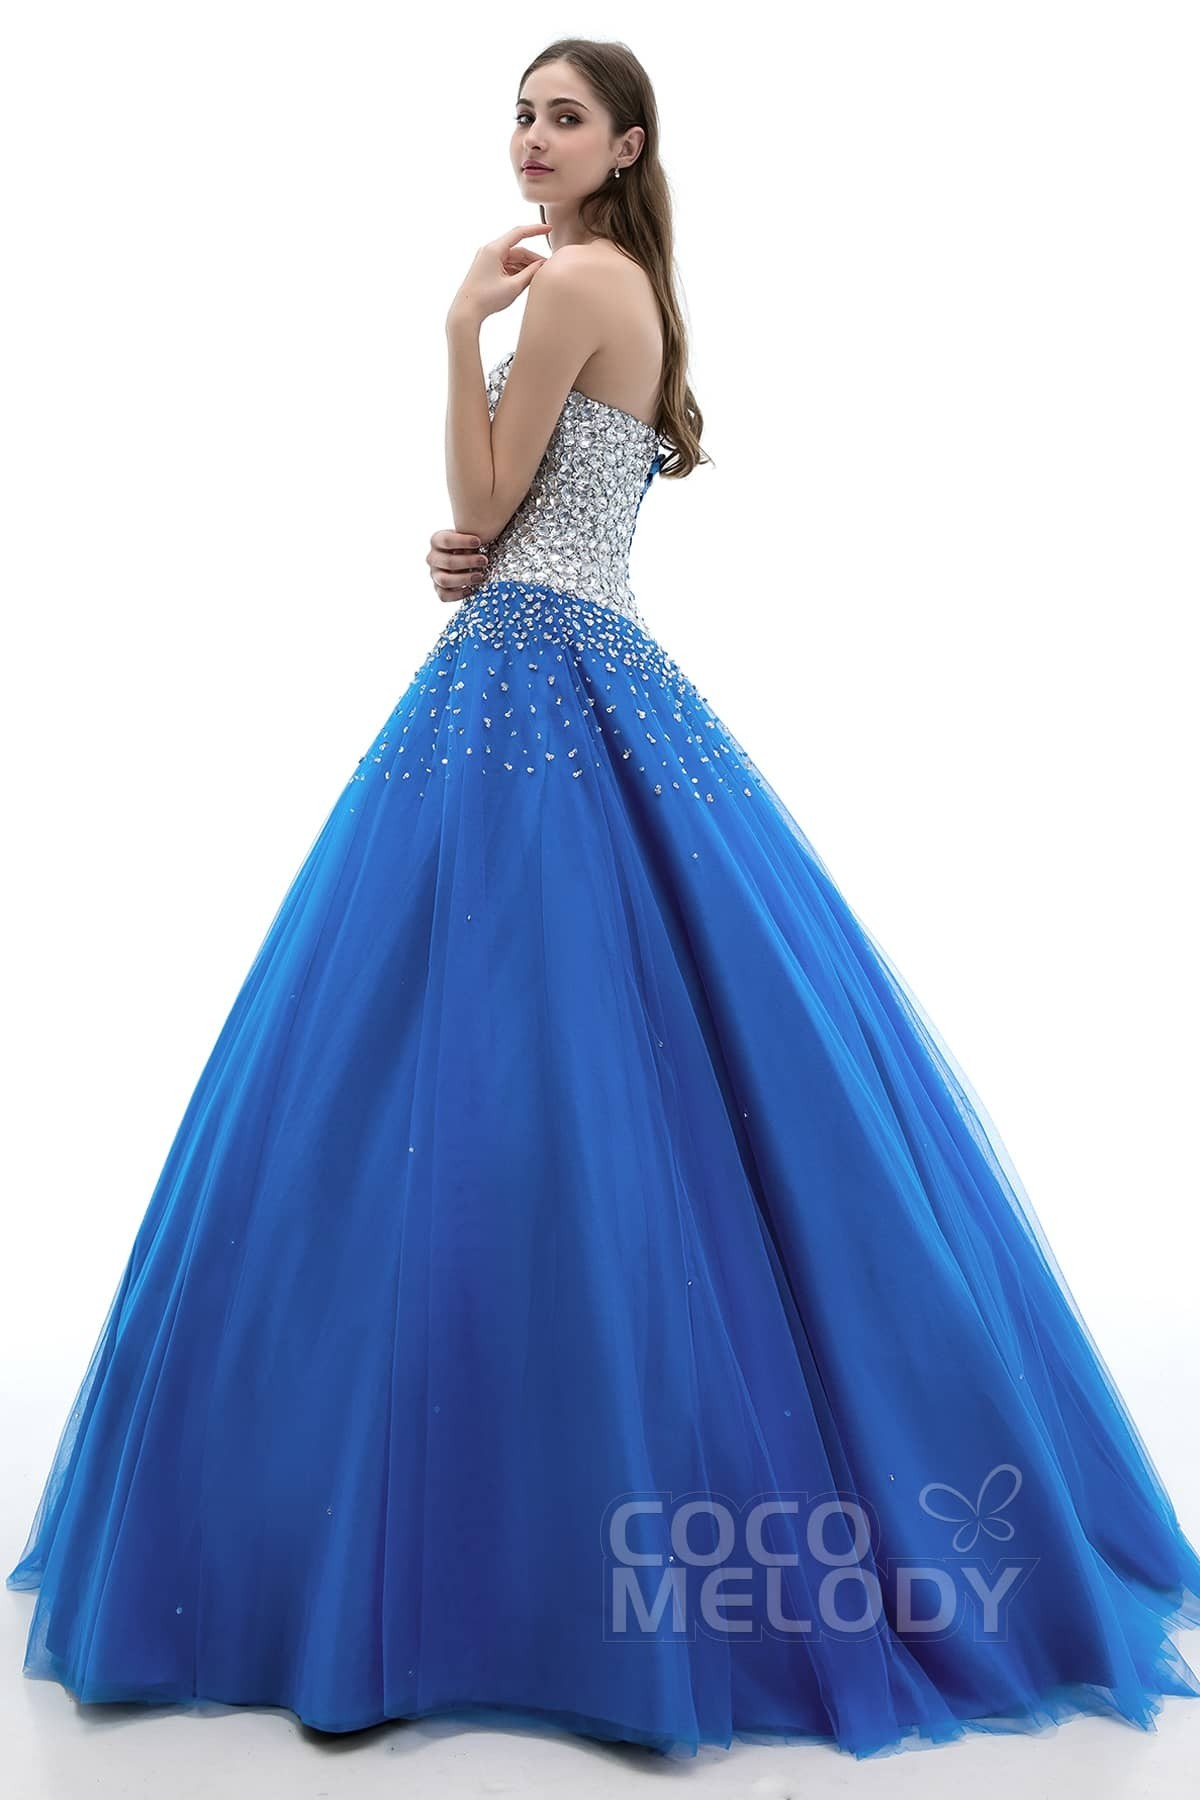 4f529cf16cce Charming Ball Gown Sweetheart Floor Length Tulle Lace-up Corset Quinceanera  Dress with Crystals COLF1400F